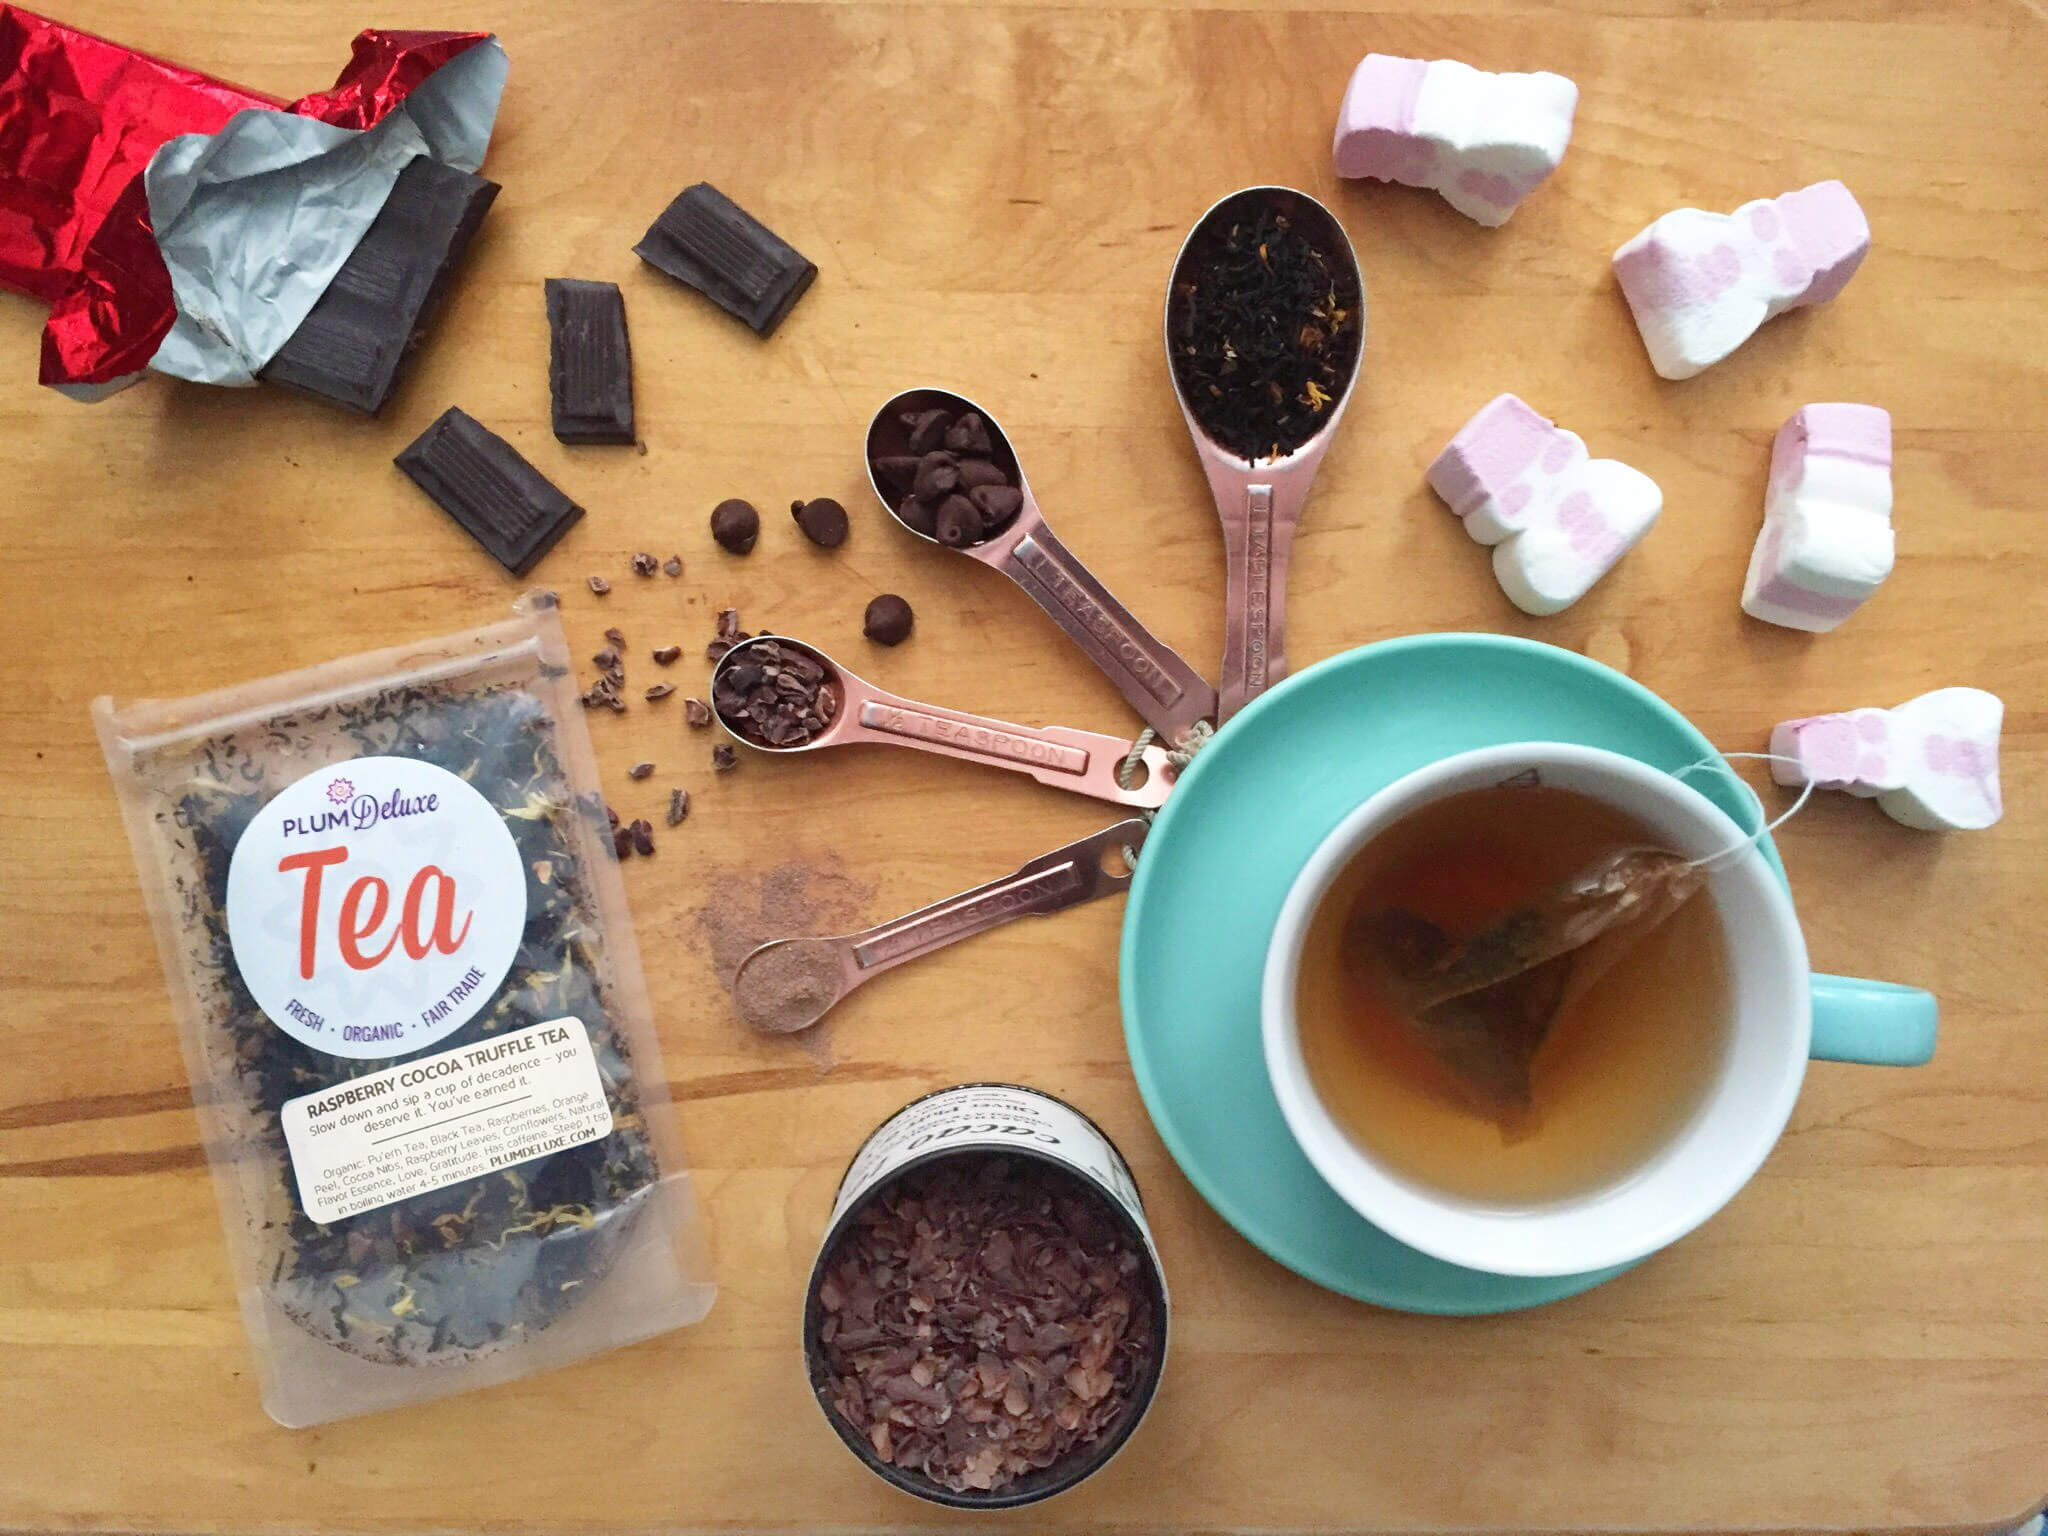 overhead view of tea in a blue teacup surrounded by chocolate, marshmallows, cacao nibs, and loose leaf tea